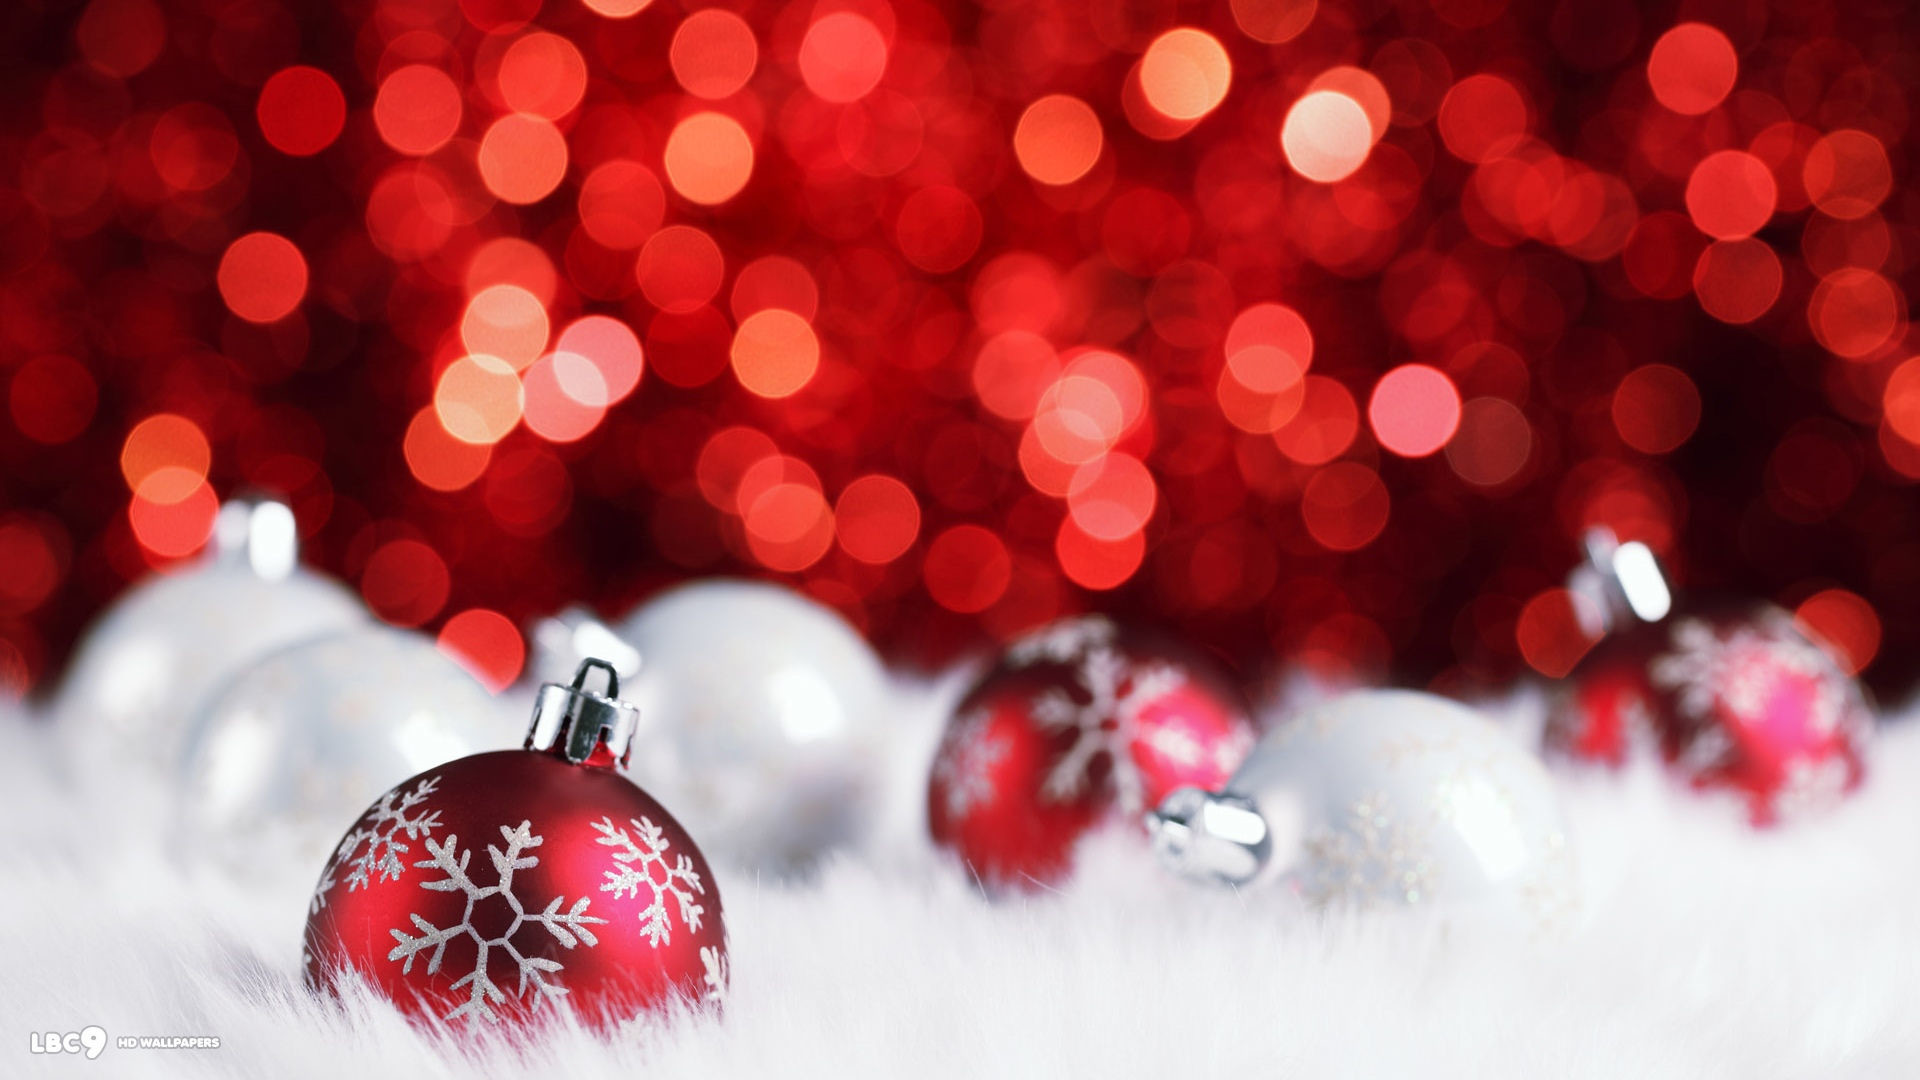 red silver christmas balls decorations bokeh holiday desktop background